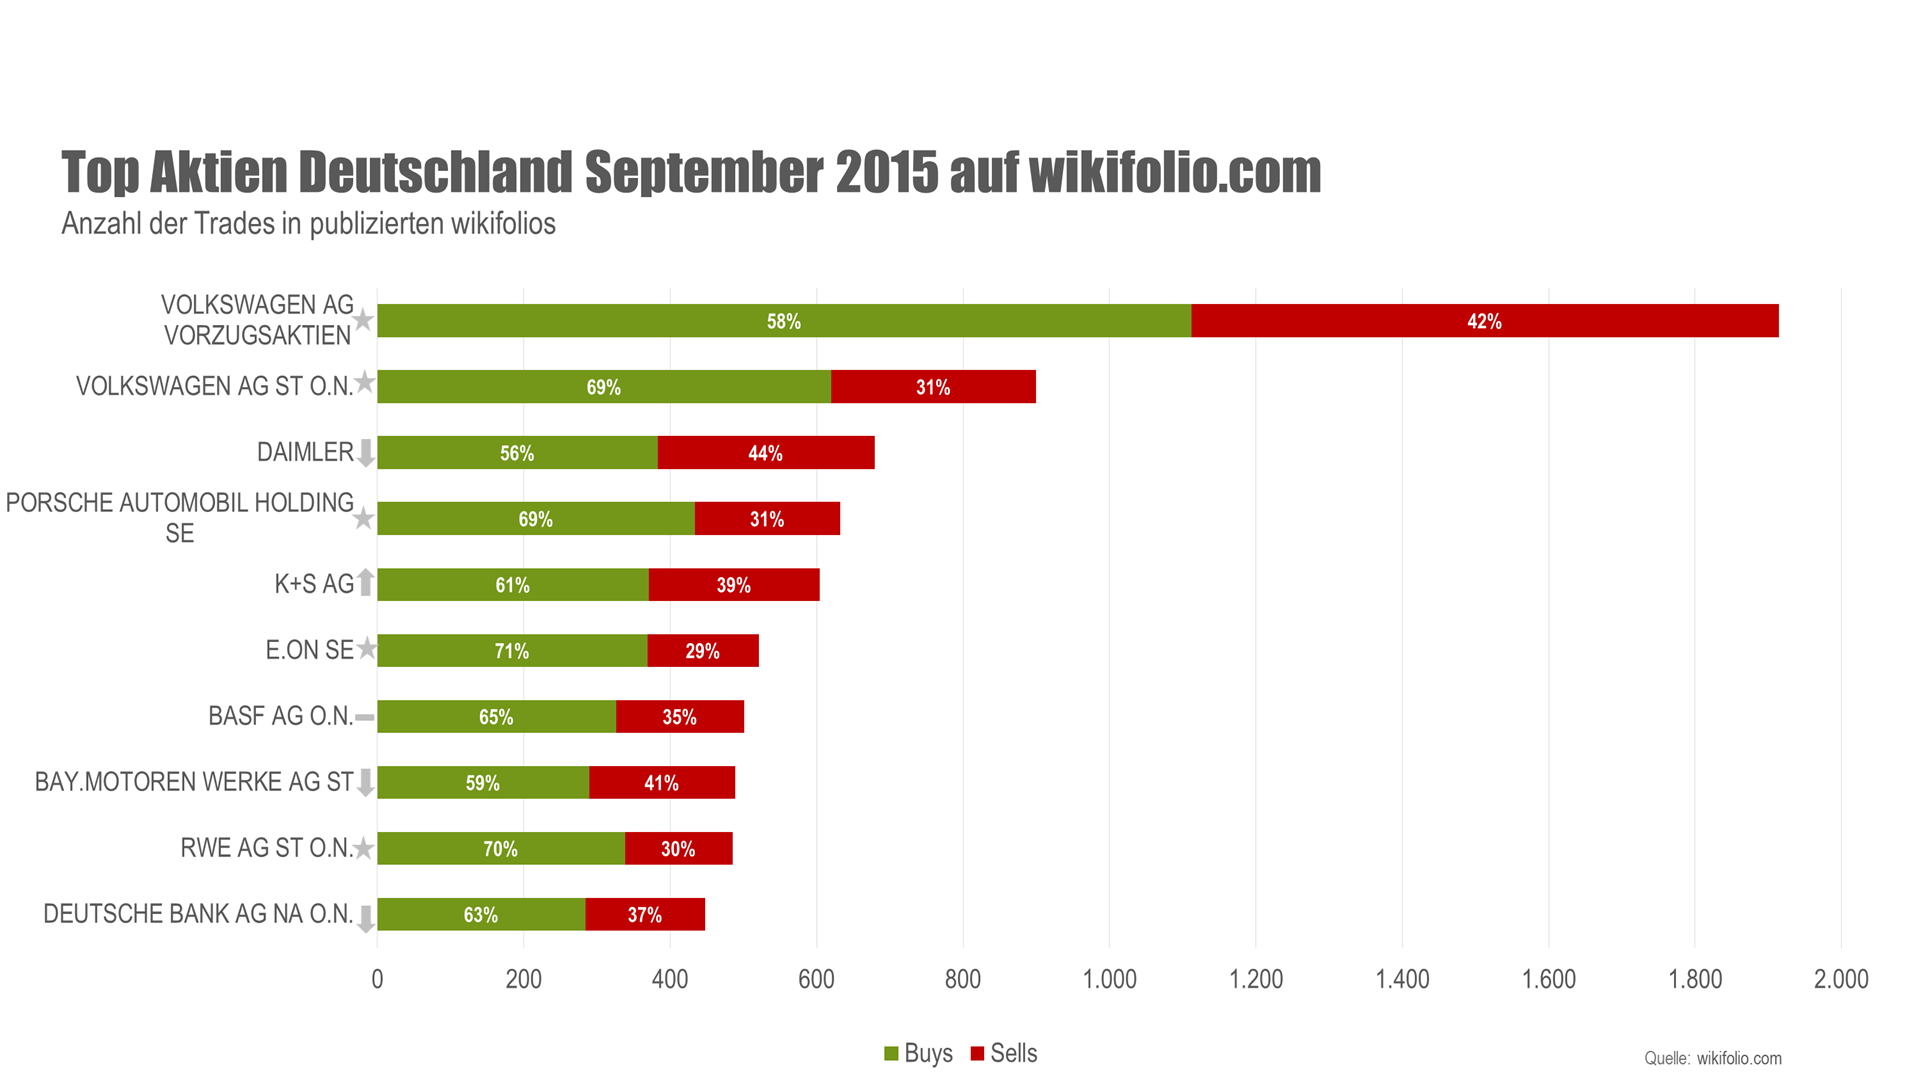 wikifolio Top 10 Aktien September 2015 Deutschland